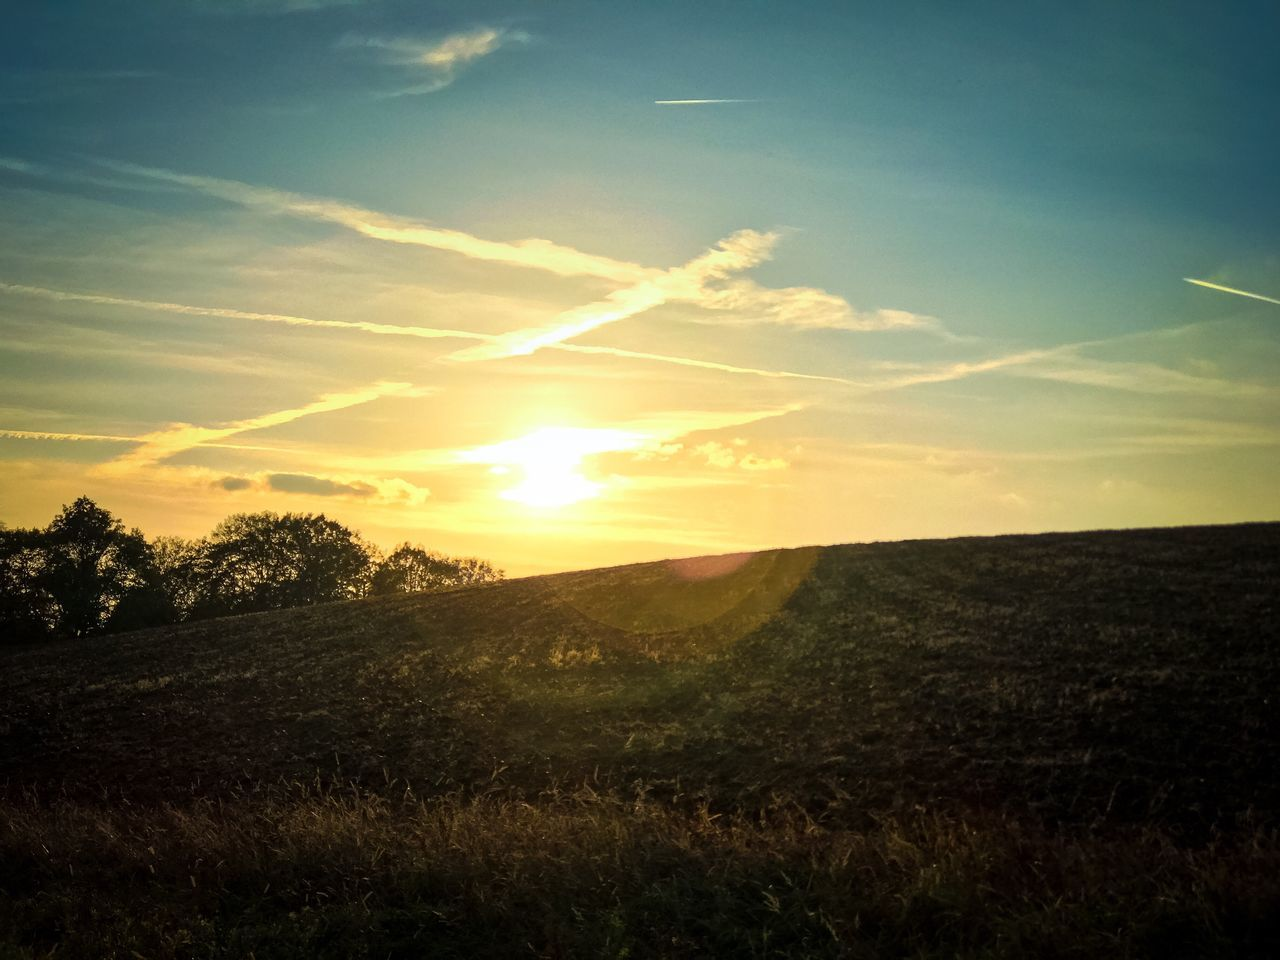 field, sunset, nature, sun, scenics, landscape, tranquil scene, sunbeam, grass, beauty in nature, tranquility, sunlight, sky, no people, idyllic, outdoors, horizon over land, growth, agriculture, rural scene, tree, day